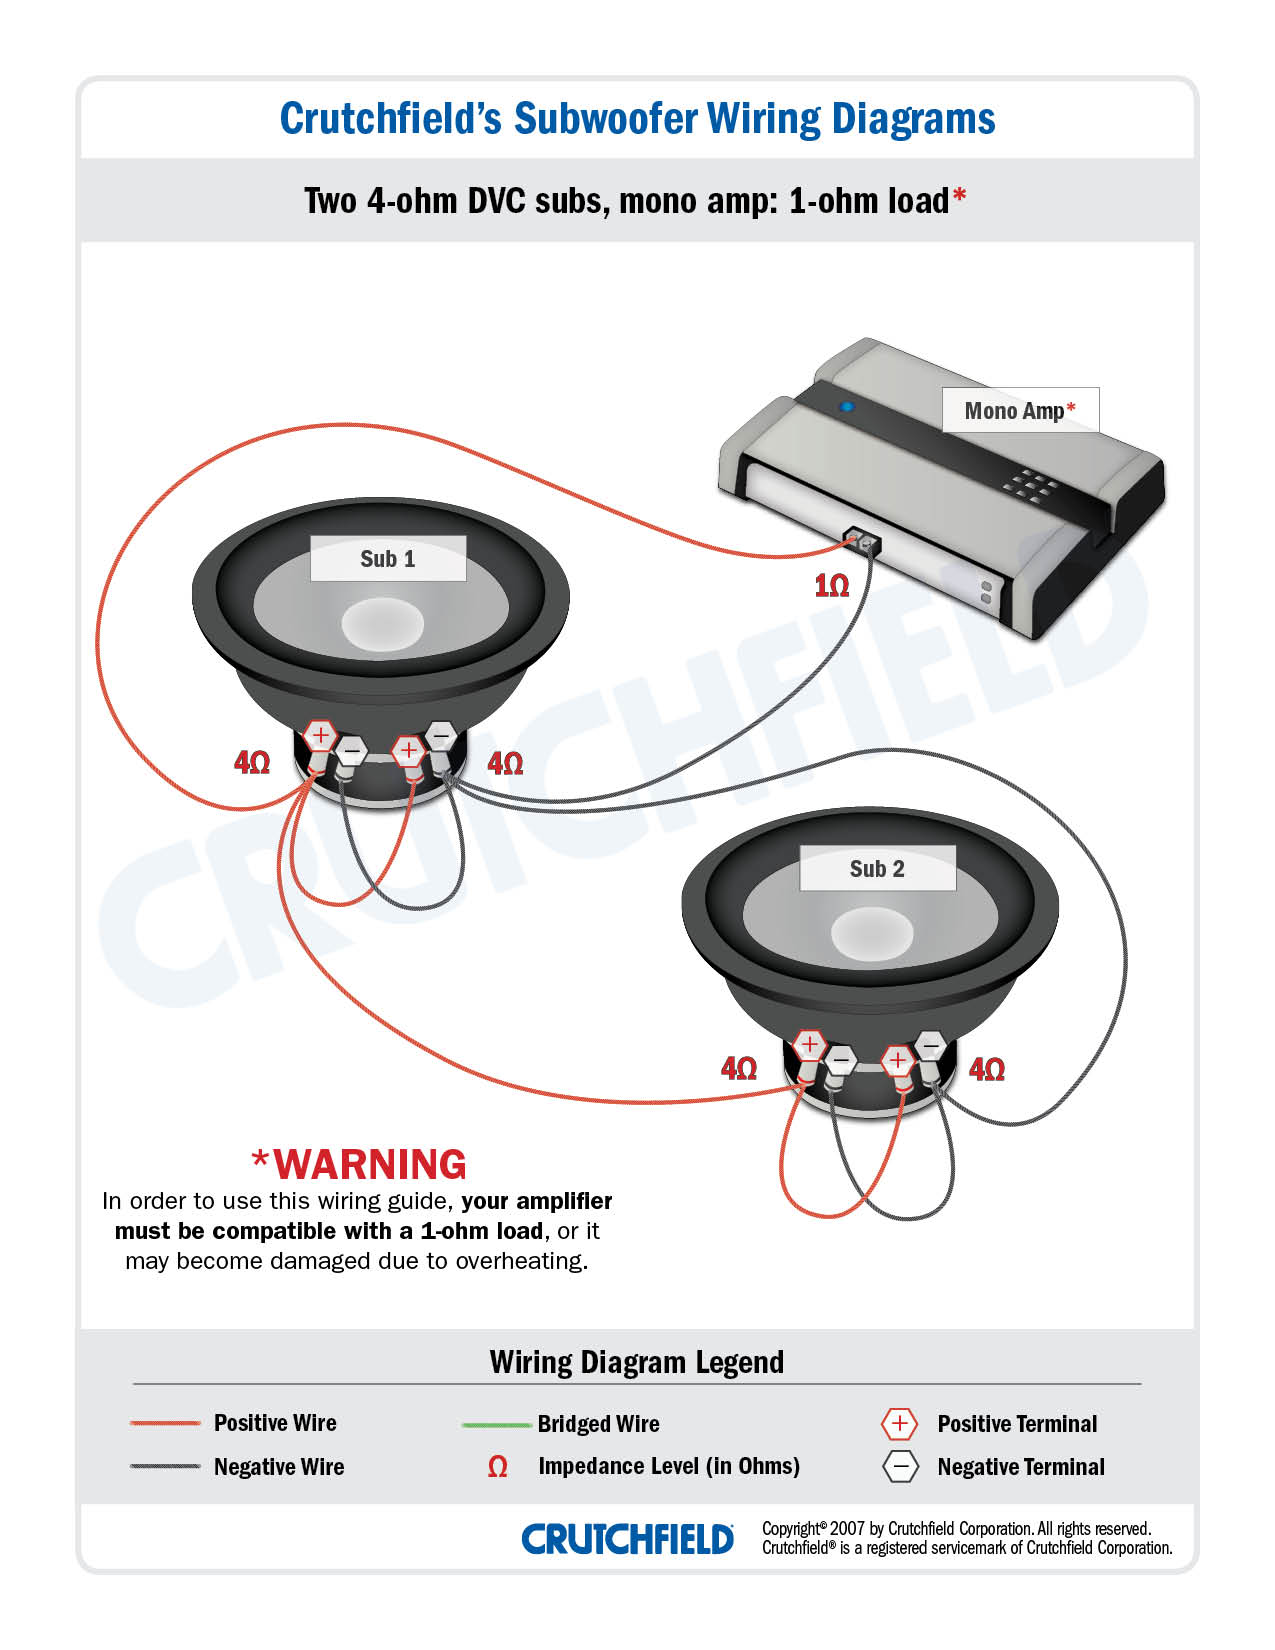 2 DVC 4 ohm mono low imp amplifier wiring diagrams how to add an amplifier to your car rockford fosgate capacitor wiring diagram at gsmx.co